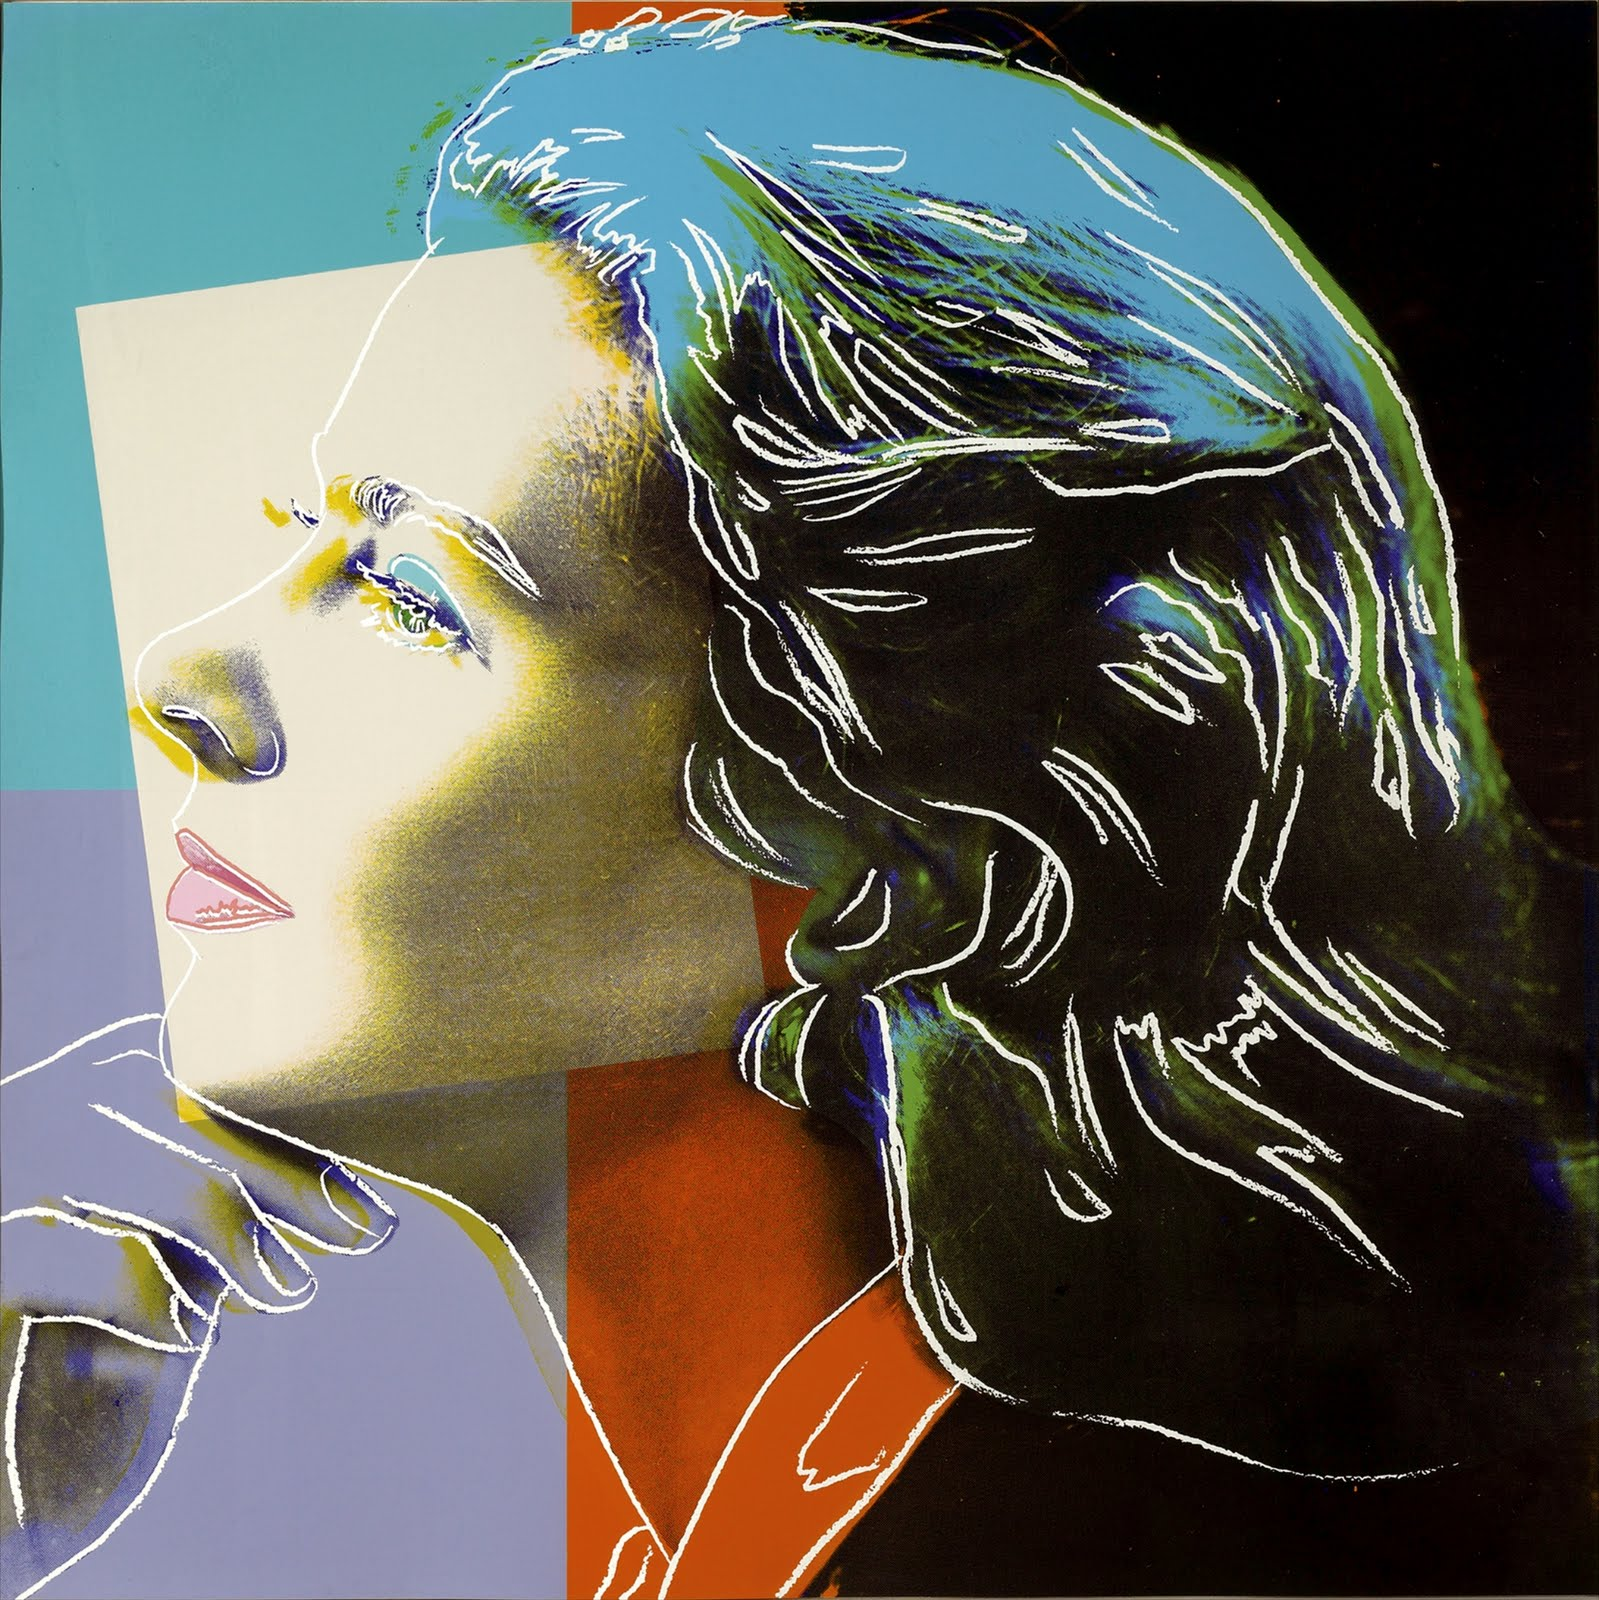 Ingrid Bergman 313 (Herself) by Andy Warhol